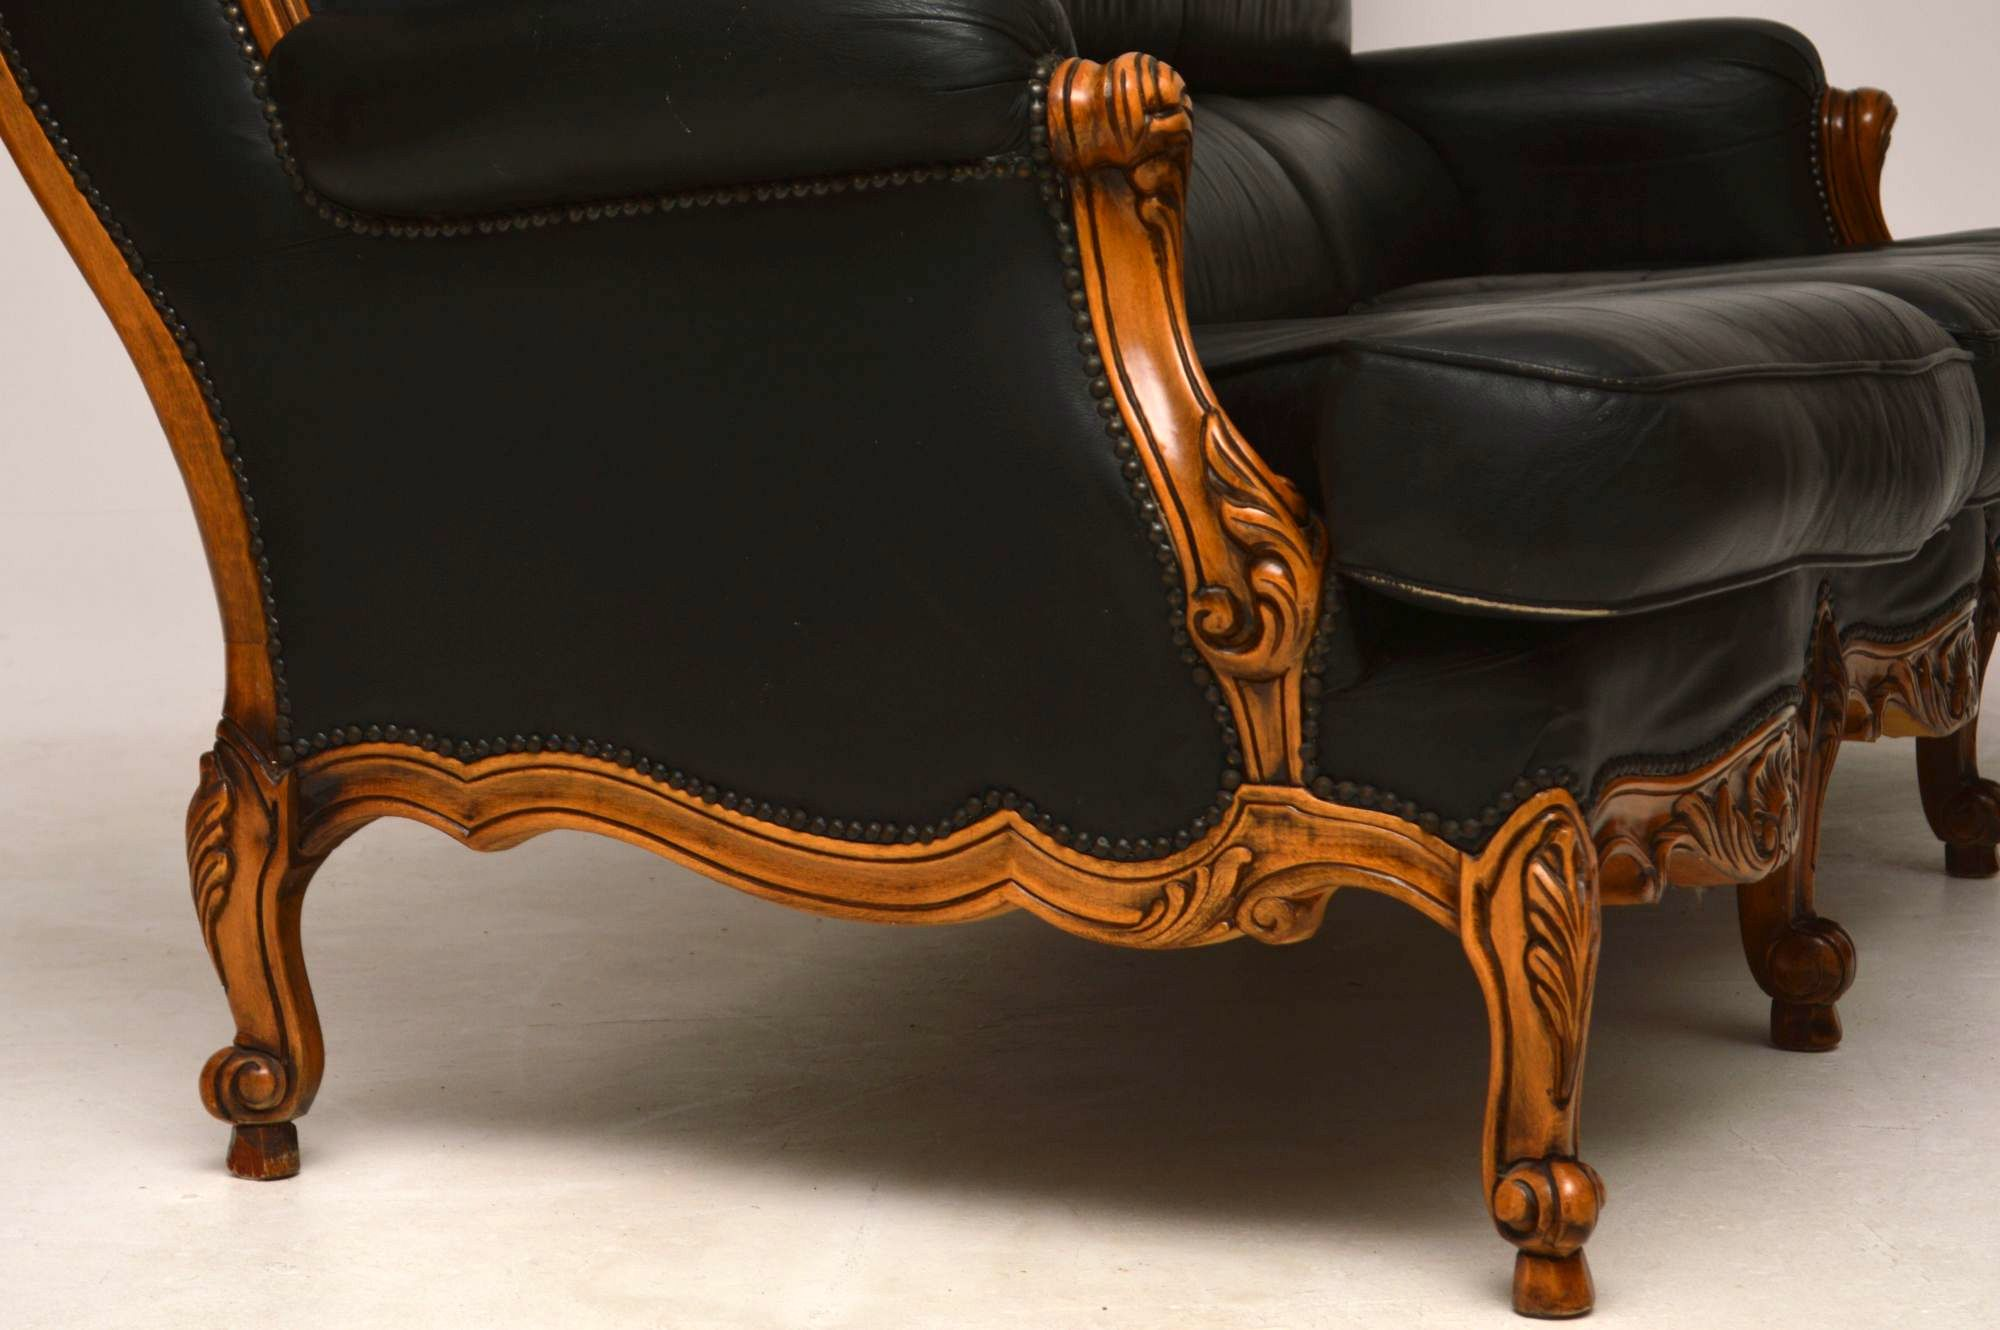 Danish Furniture St Louis Antique French Louis Style Vintage Leather Sofa